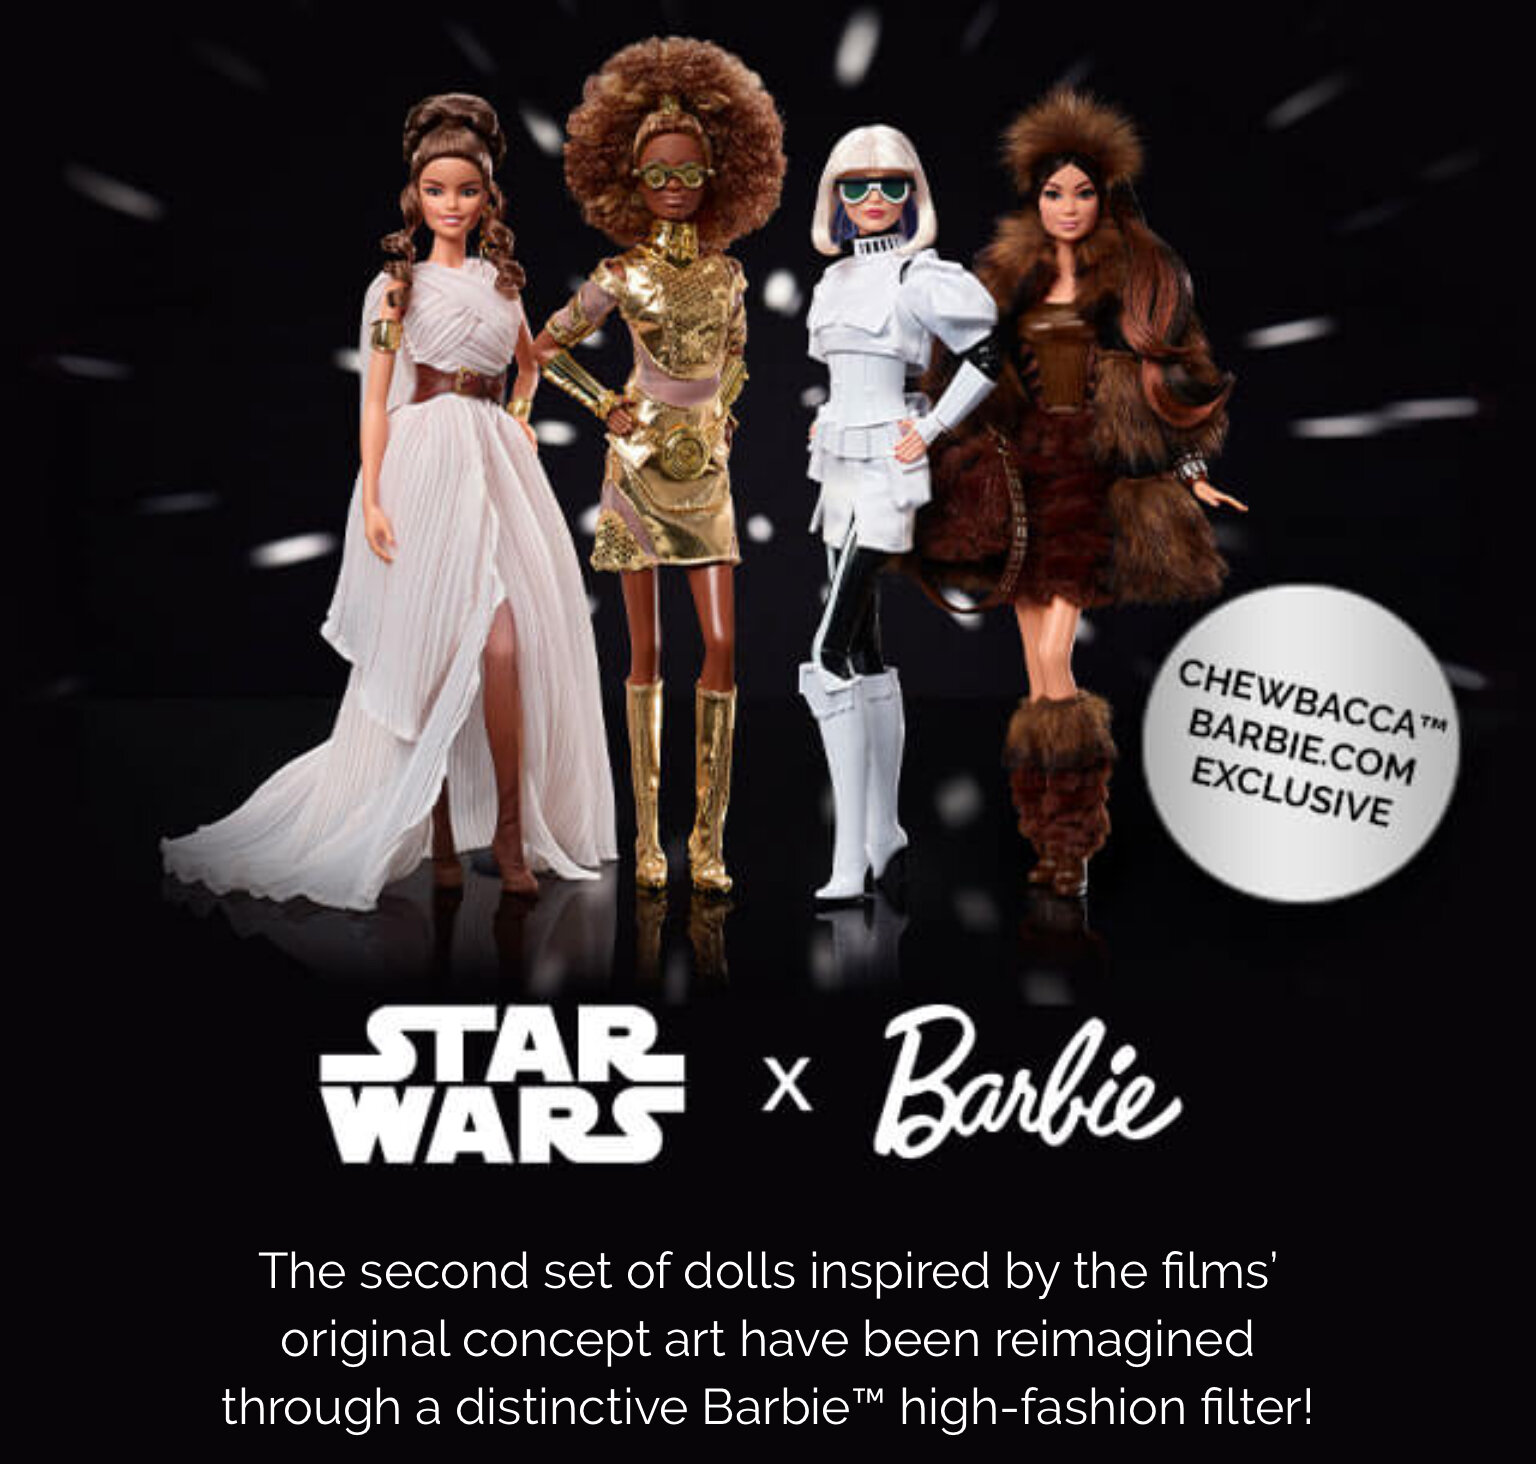 Limited Edition Barbie Star Wars Princess Leia Doll BRAND NEW IN HAND